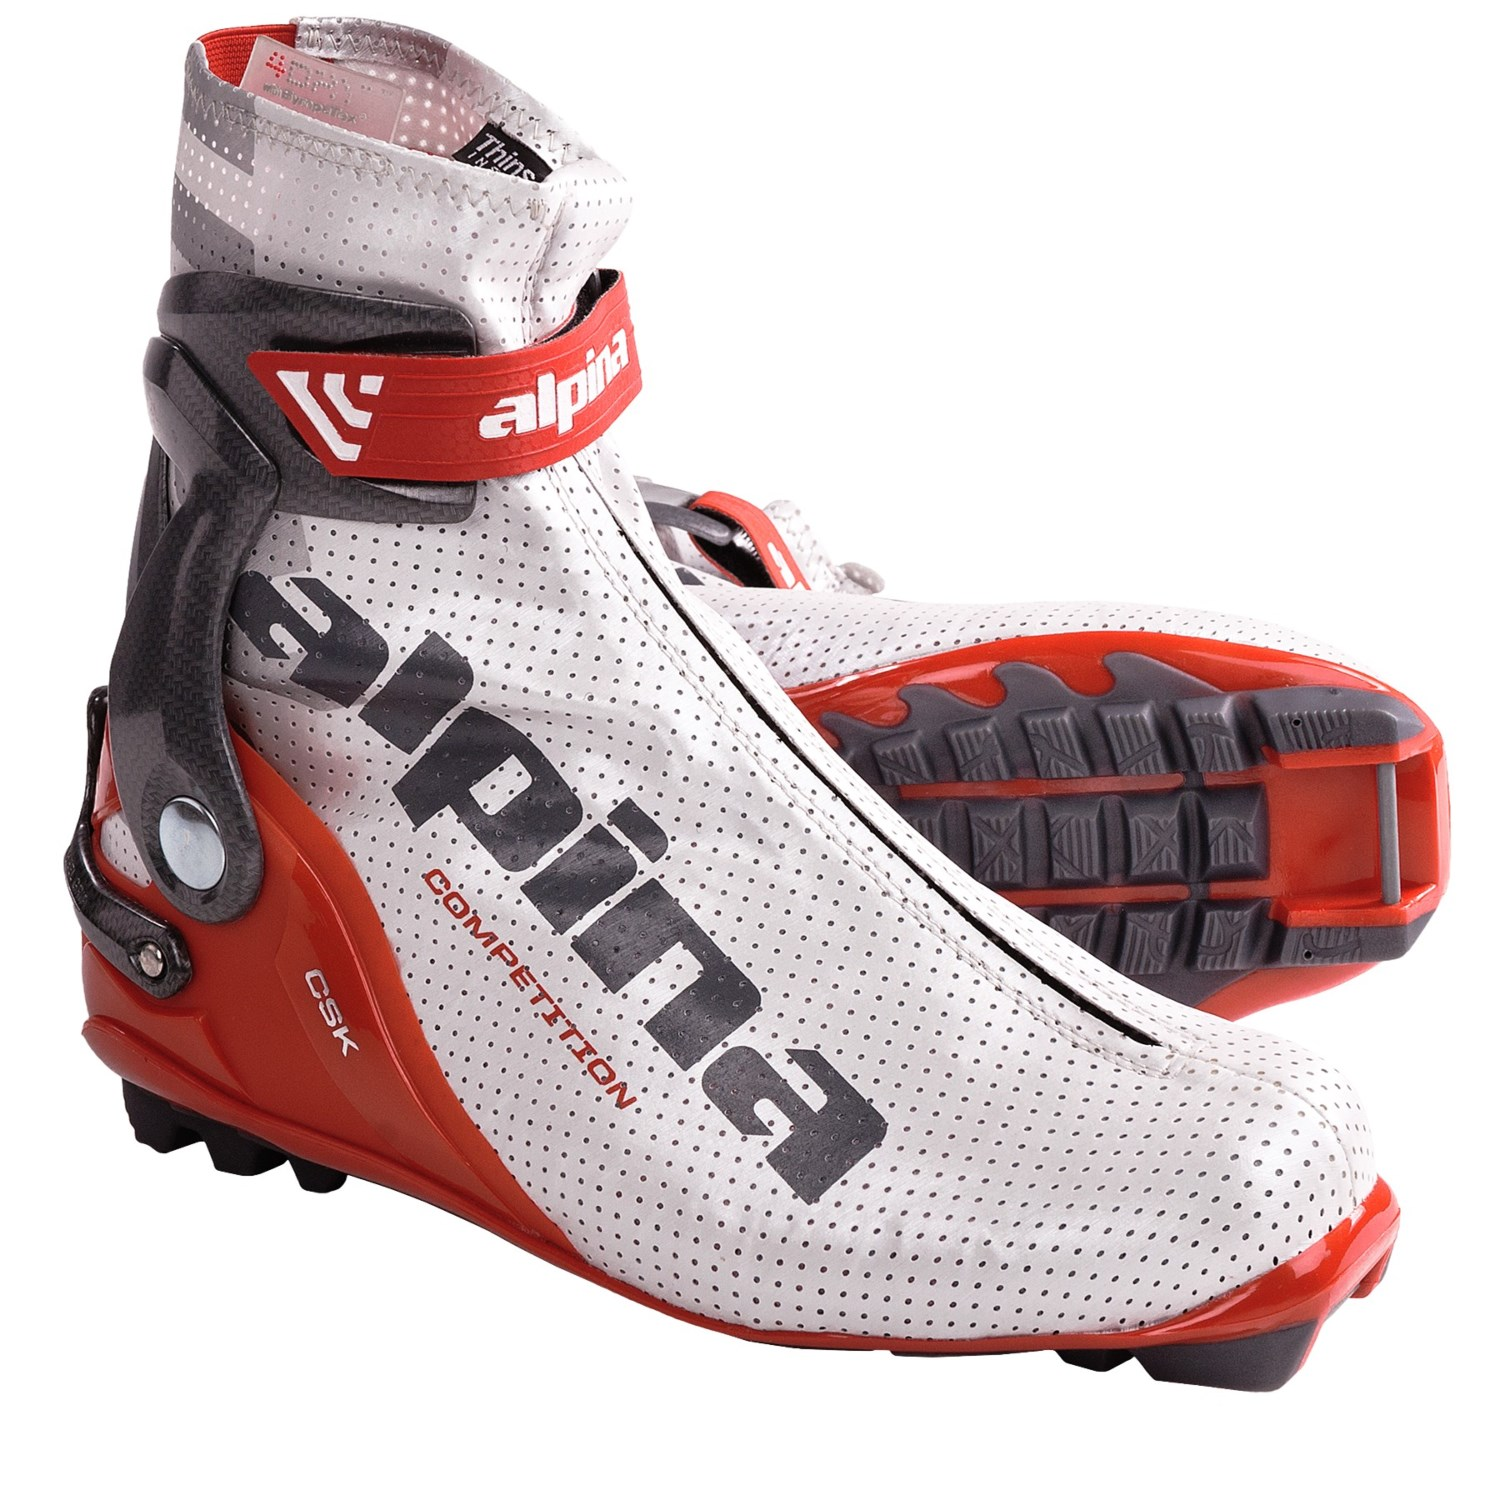 Alpina CSK Competition Cross-Country Ski Boots (For Men